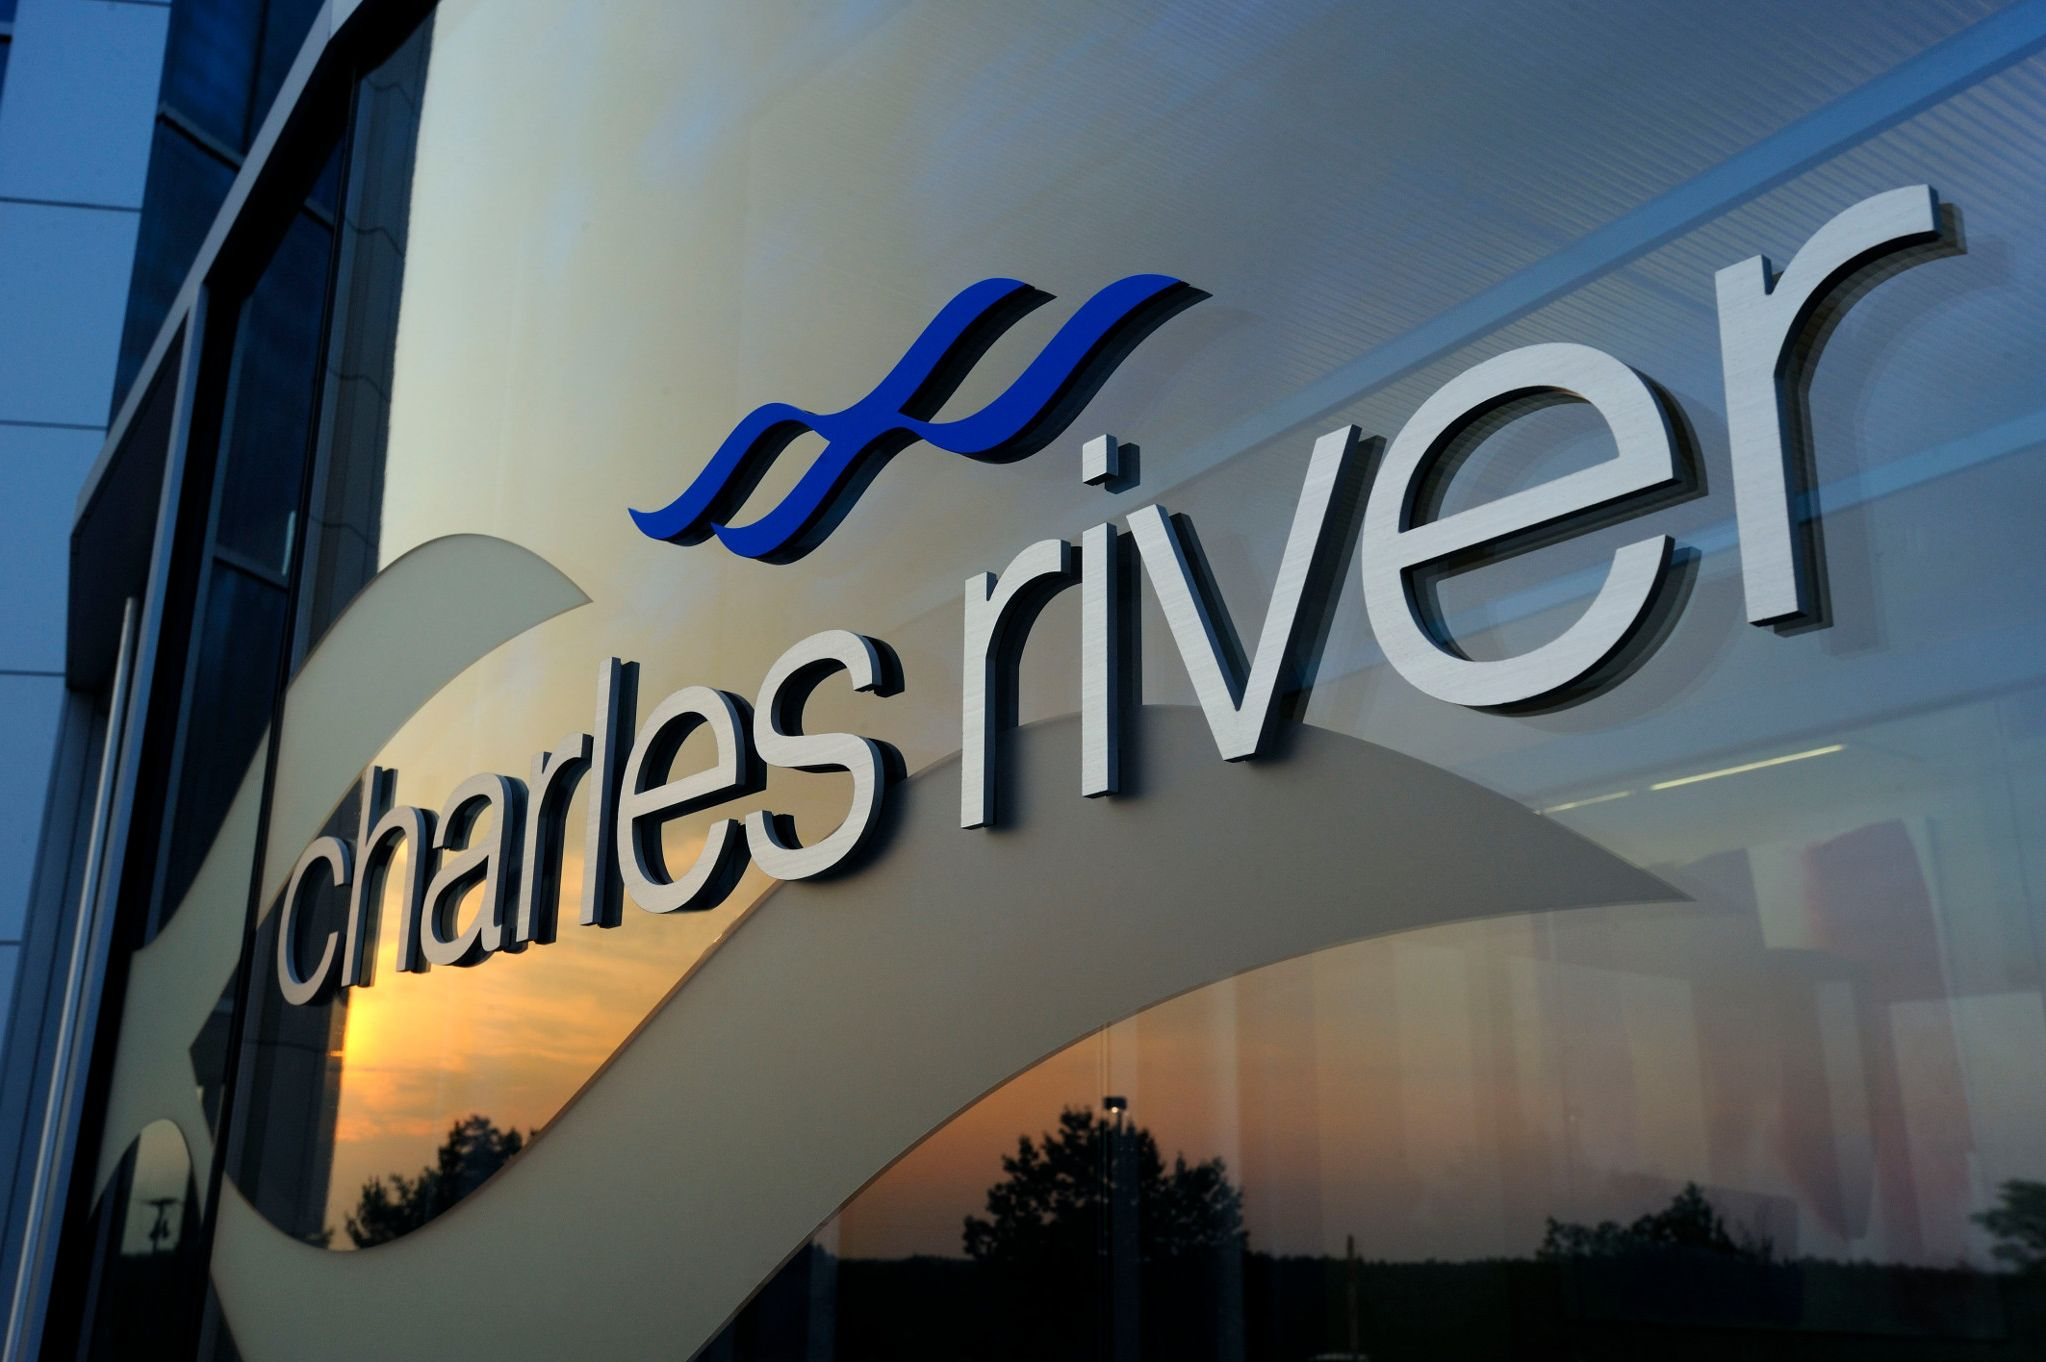 exterior of Charles River headquarters at sunset